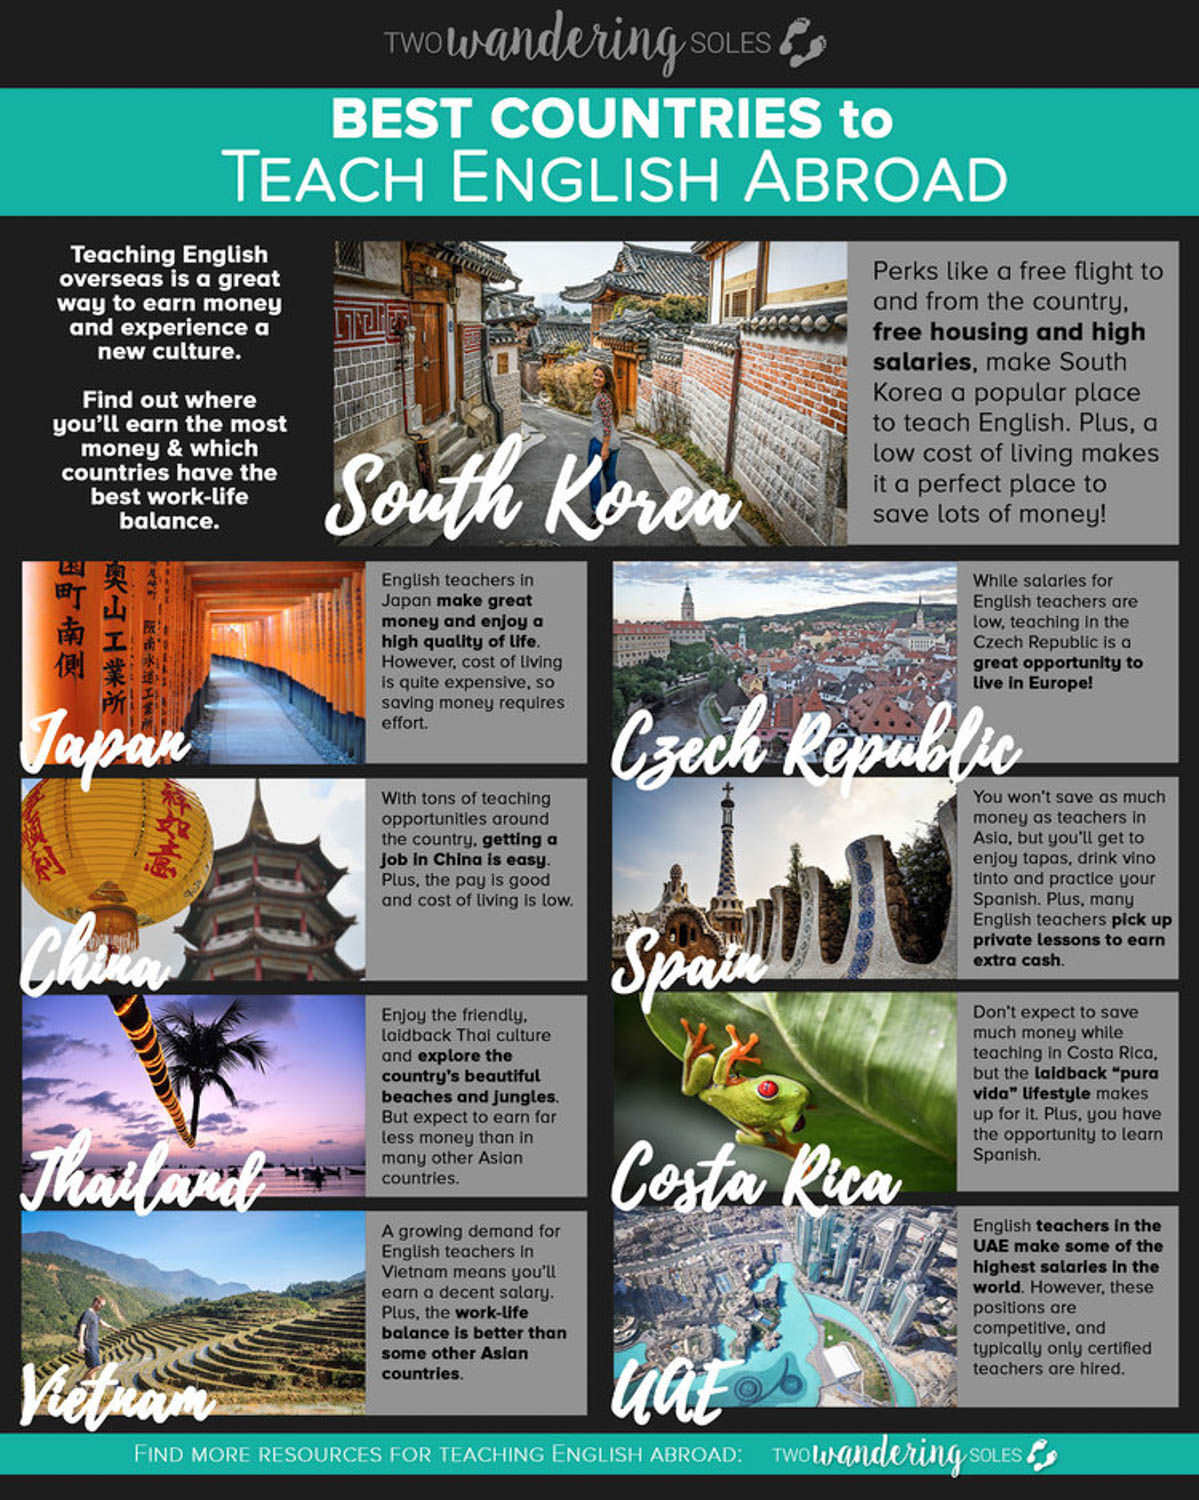 10 Best Countries to Teach English Abroad Infographic